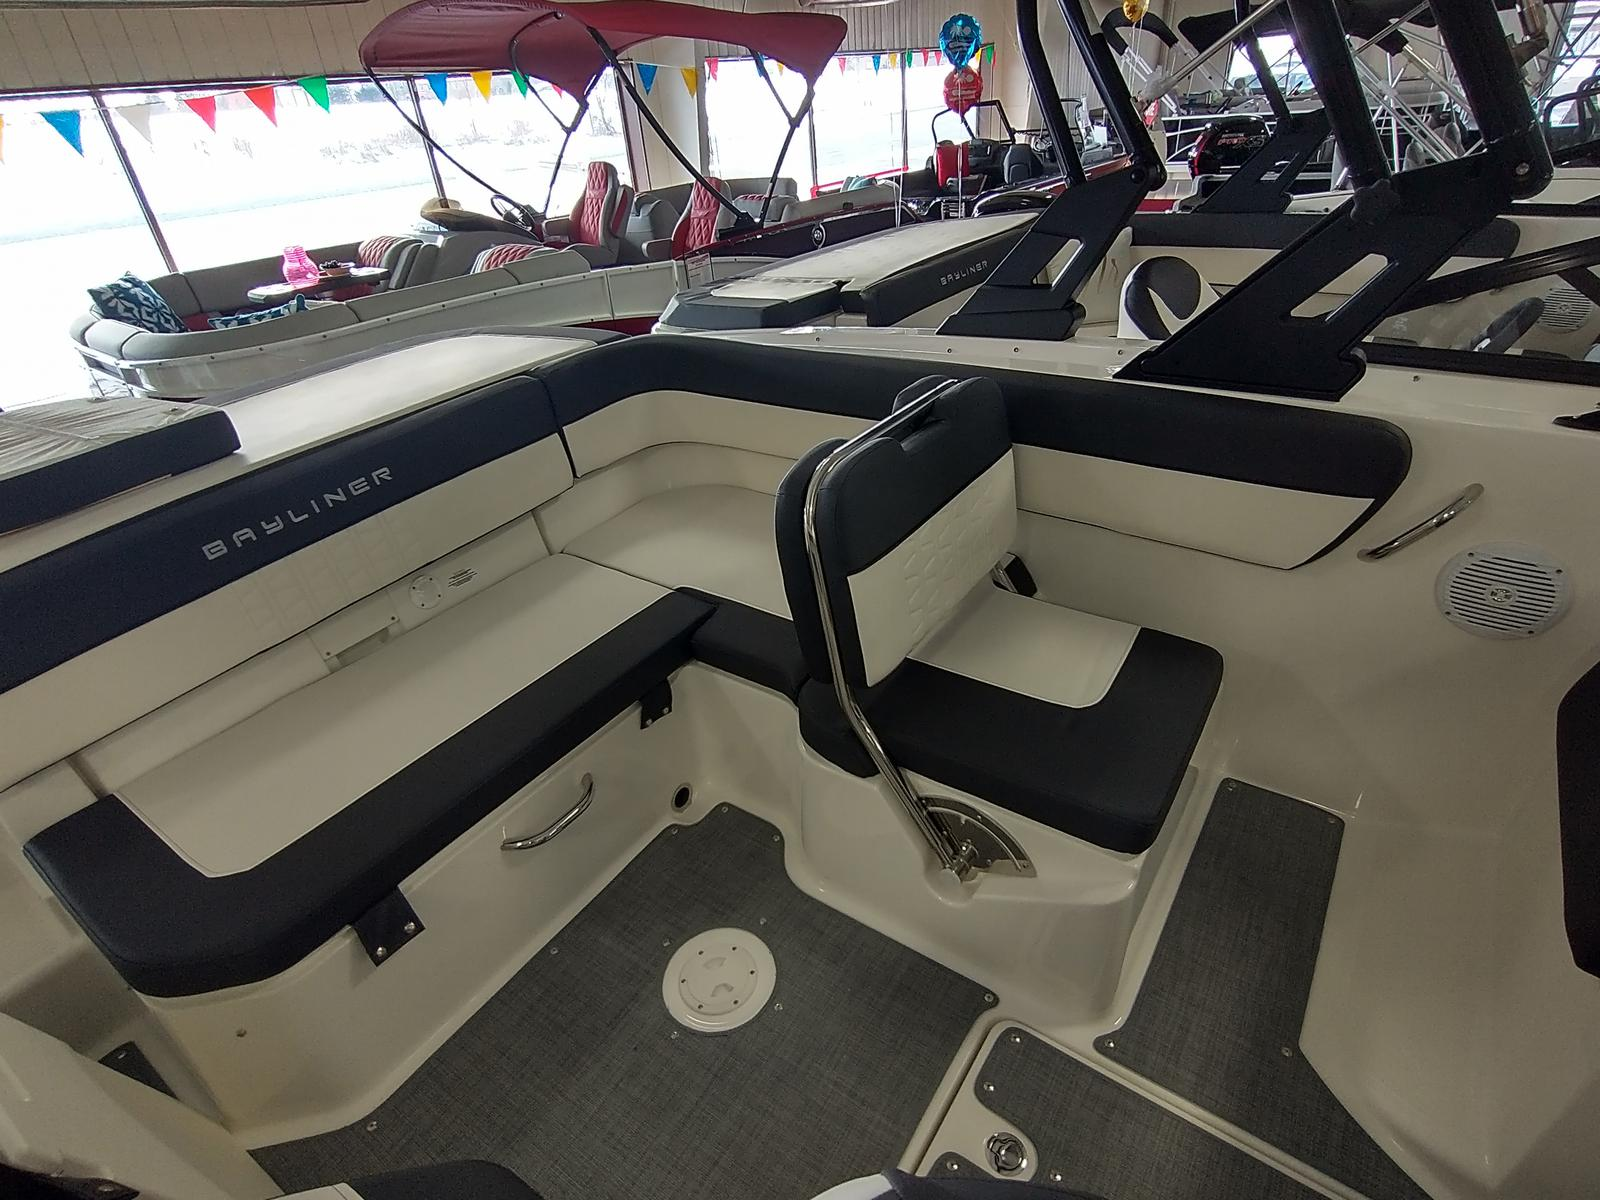 2021 Bayliner boat for sale, model of the boat is VR6 Bowrider & Image # 4 of 10